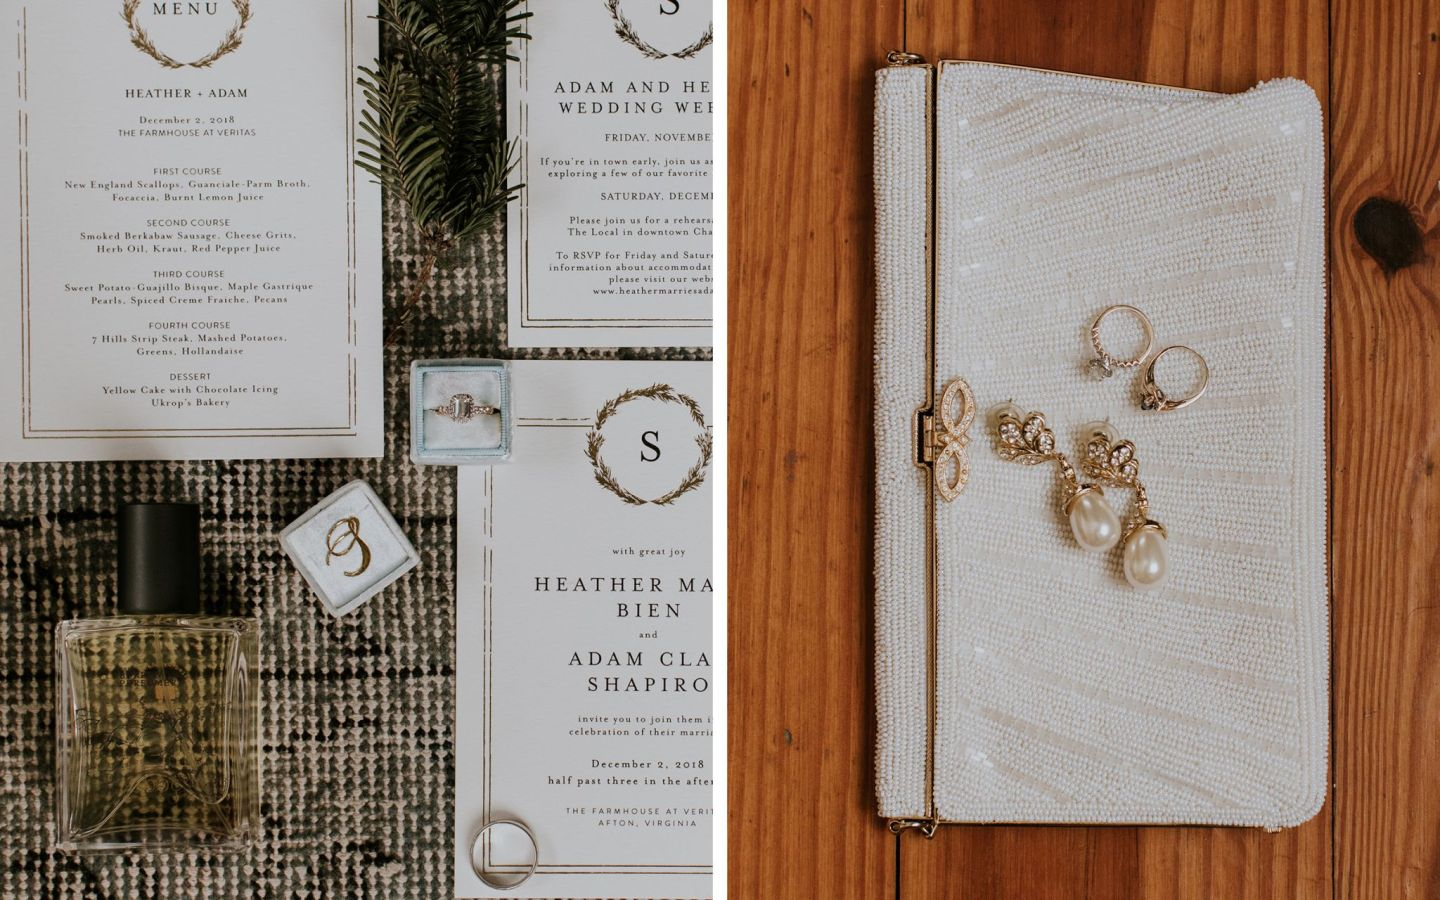 charlottesville bride - charlottesville wedding -bridal clutch - burren perfumery winter woods - winter bride